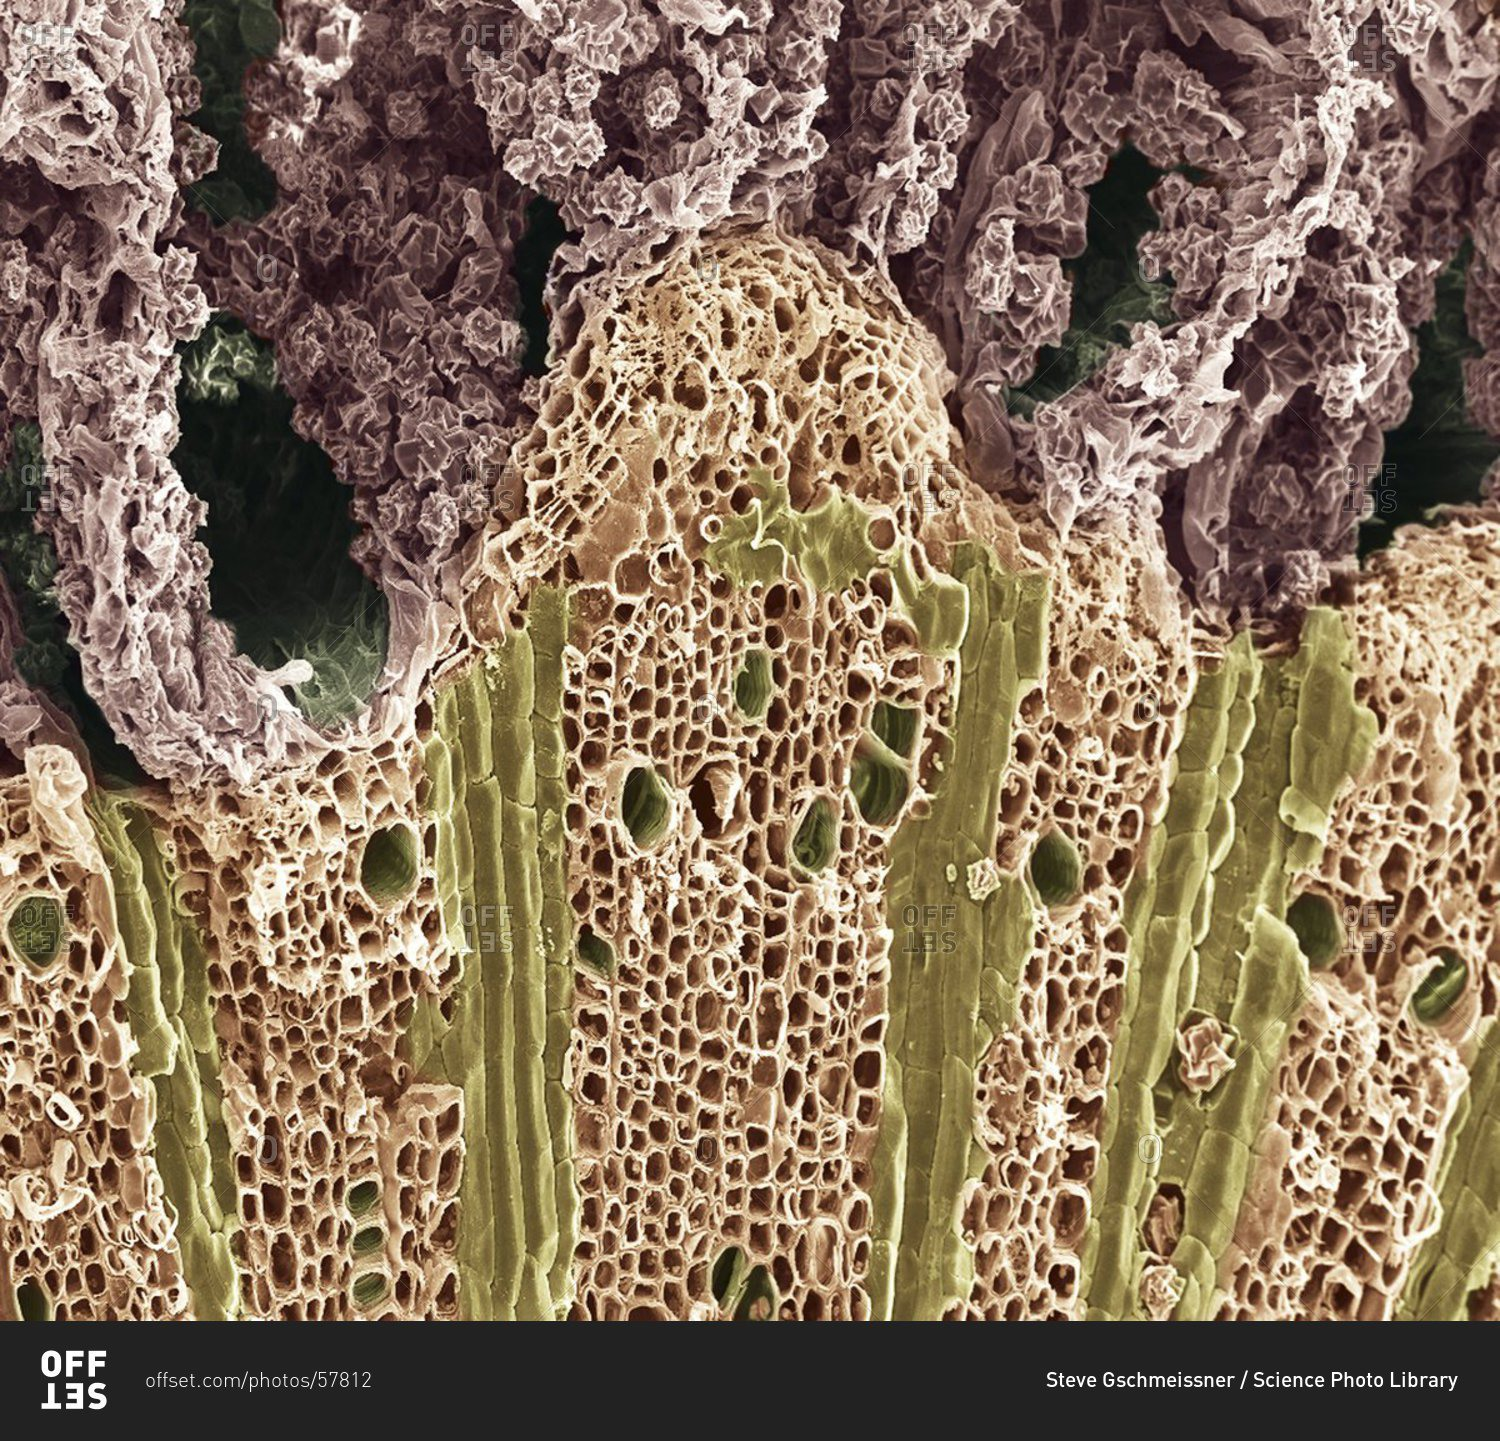 Magnification View Of Wood Under A Color Scanning Electron